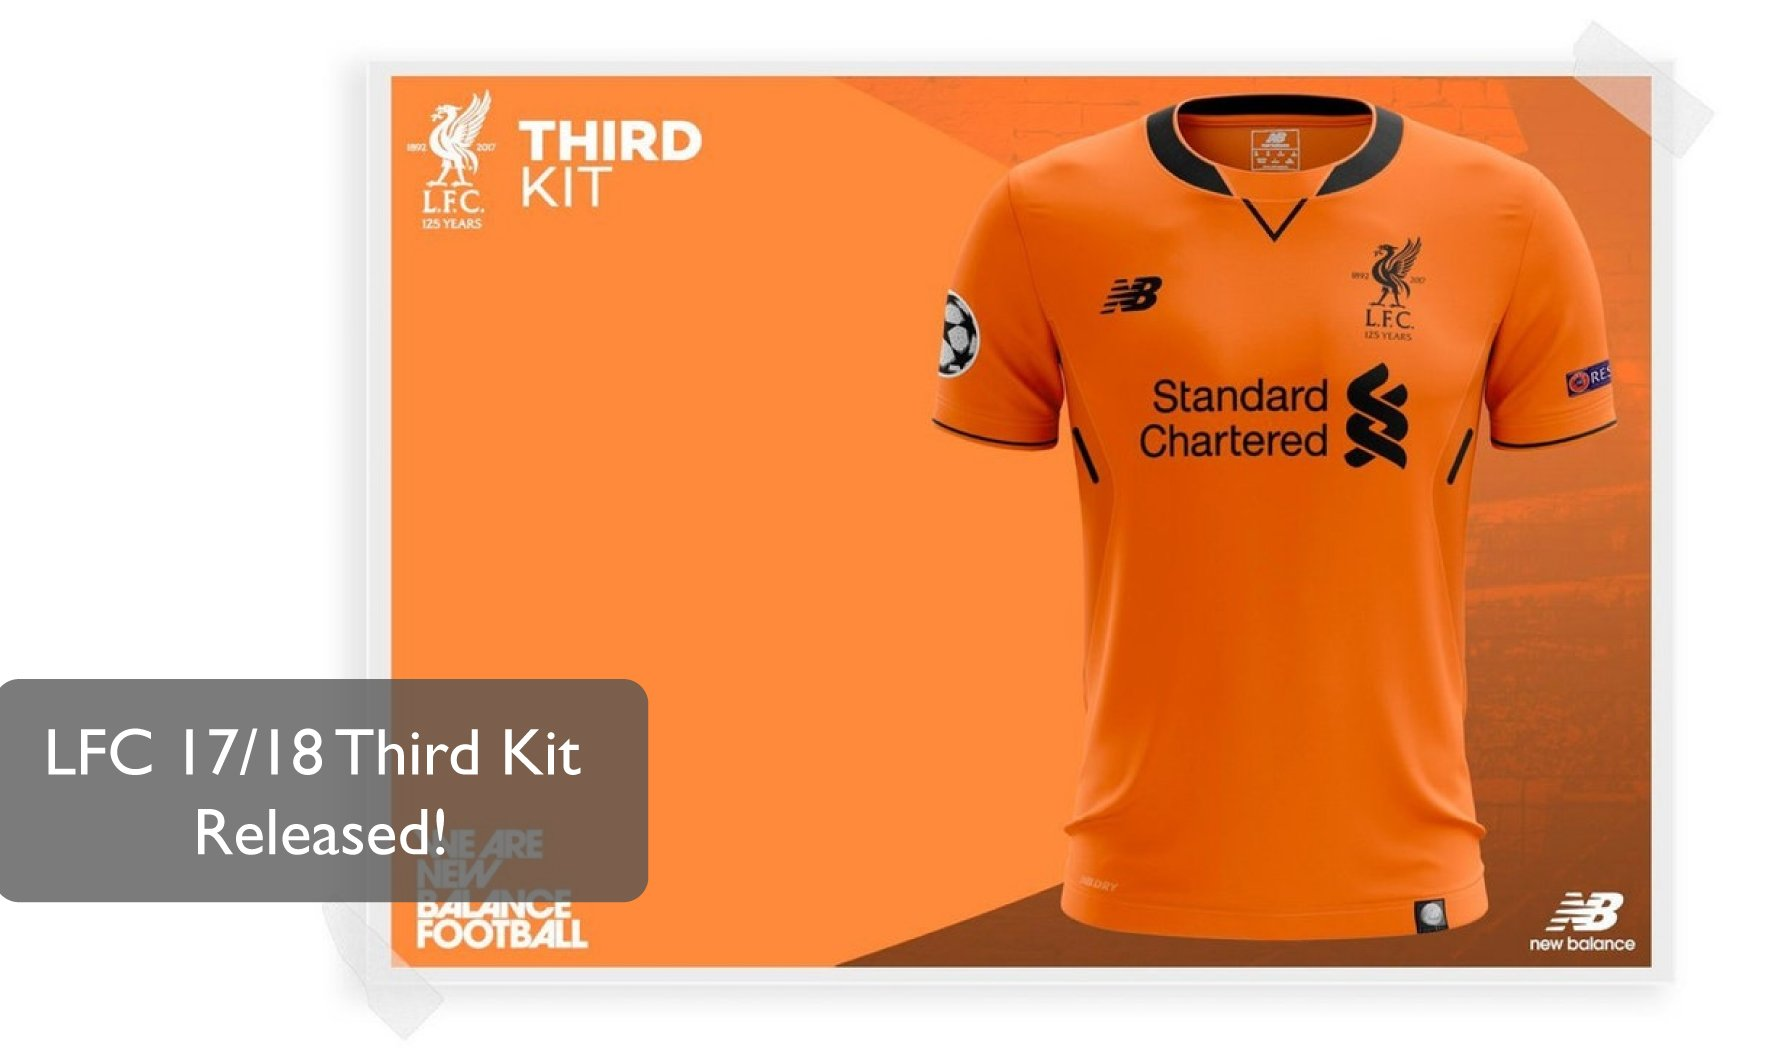 19b98038d44 LFC 17/18 Third Kit Officially Released + Champions League Draw!